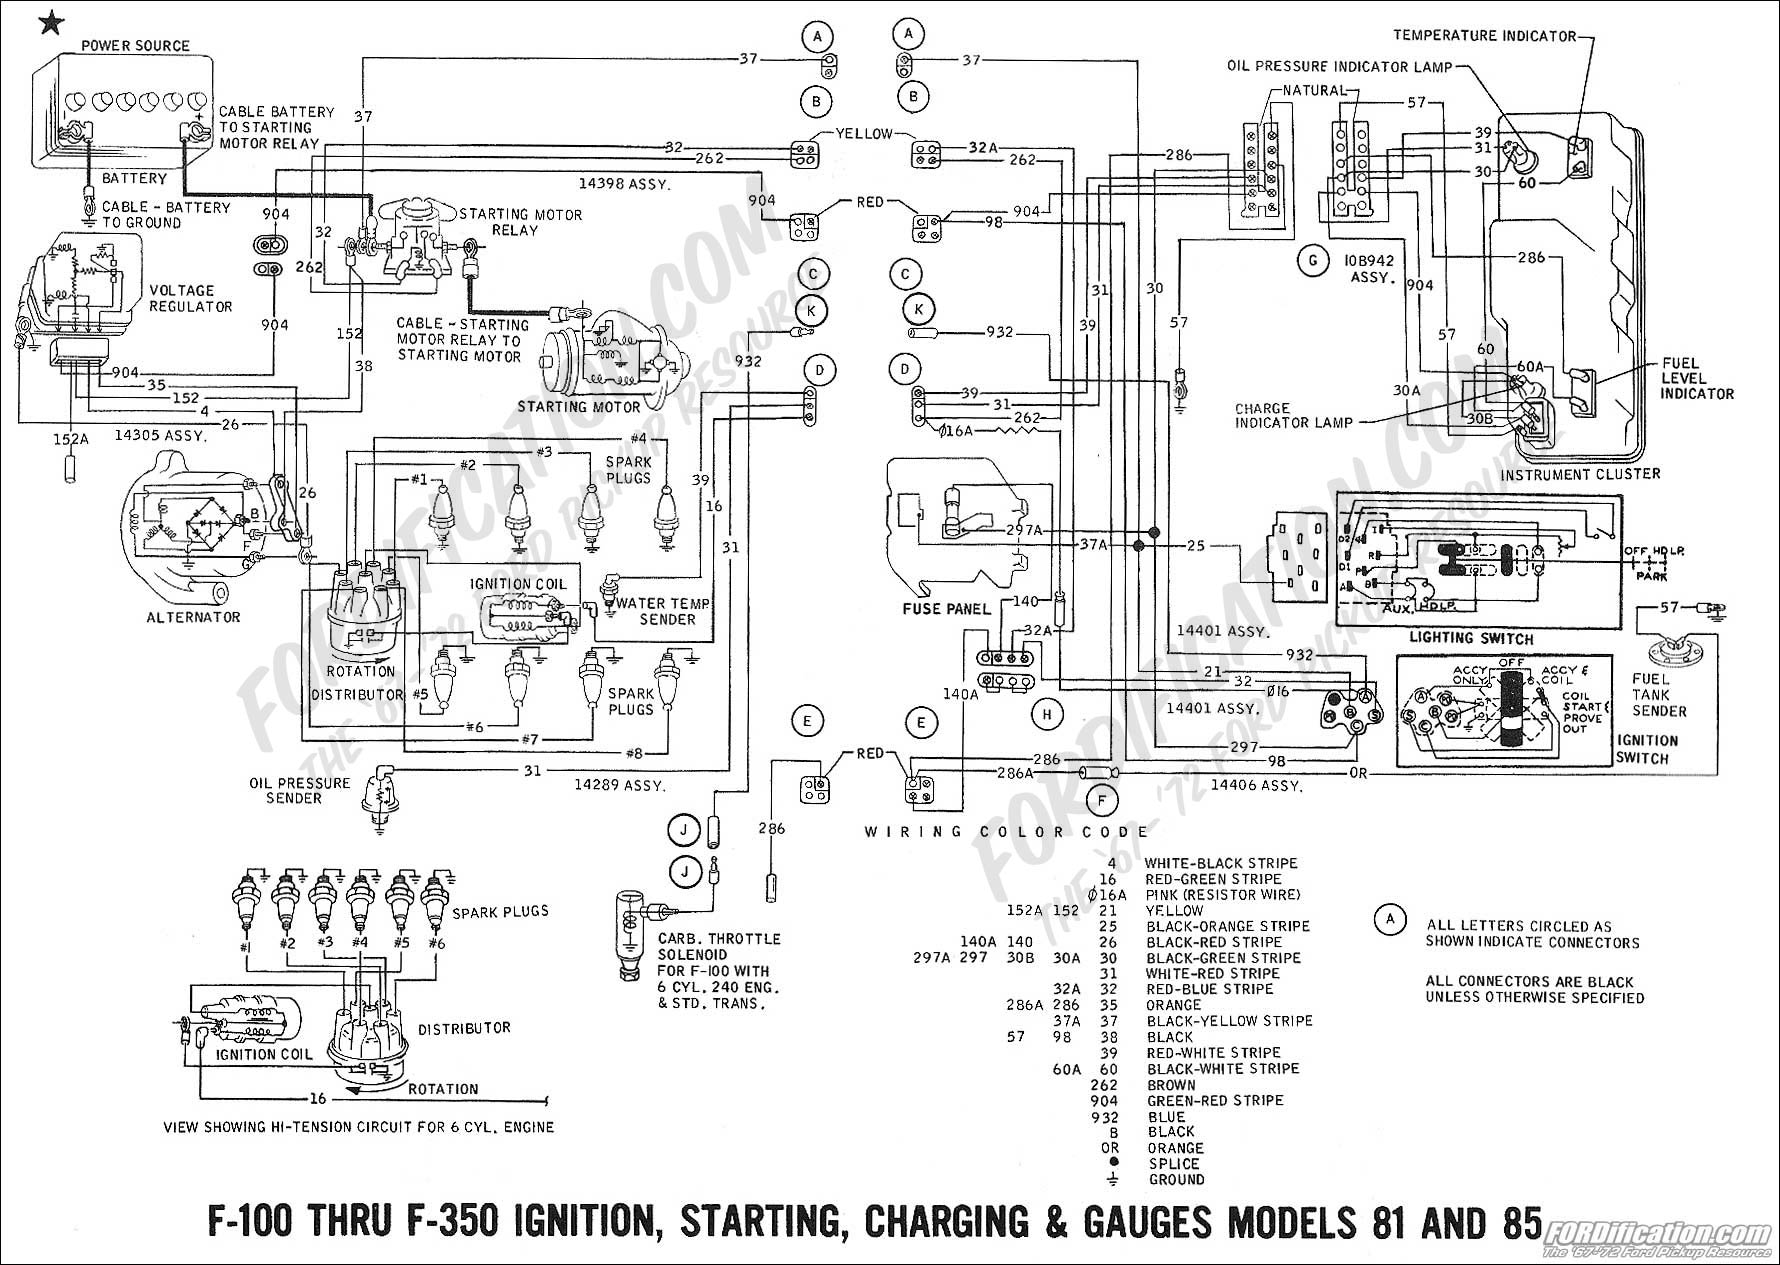 1969 ford f100 wiring diagram wire data schema u2022 rh perfect sense co